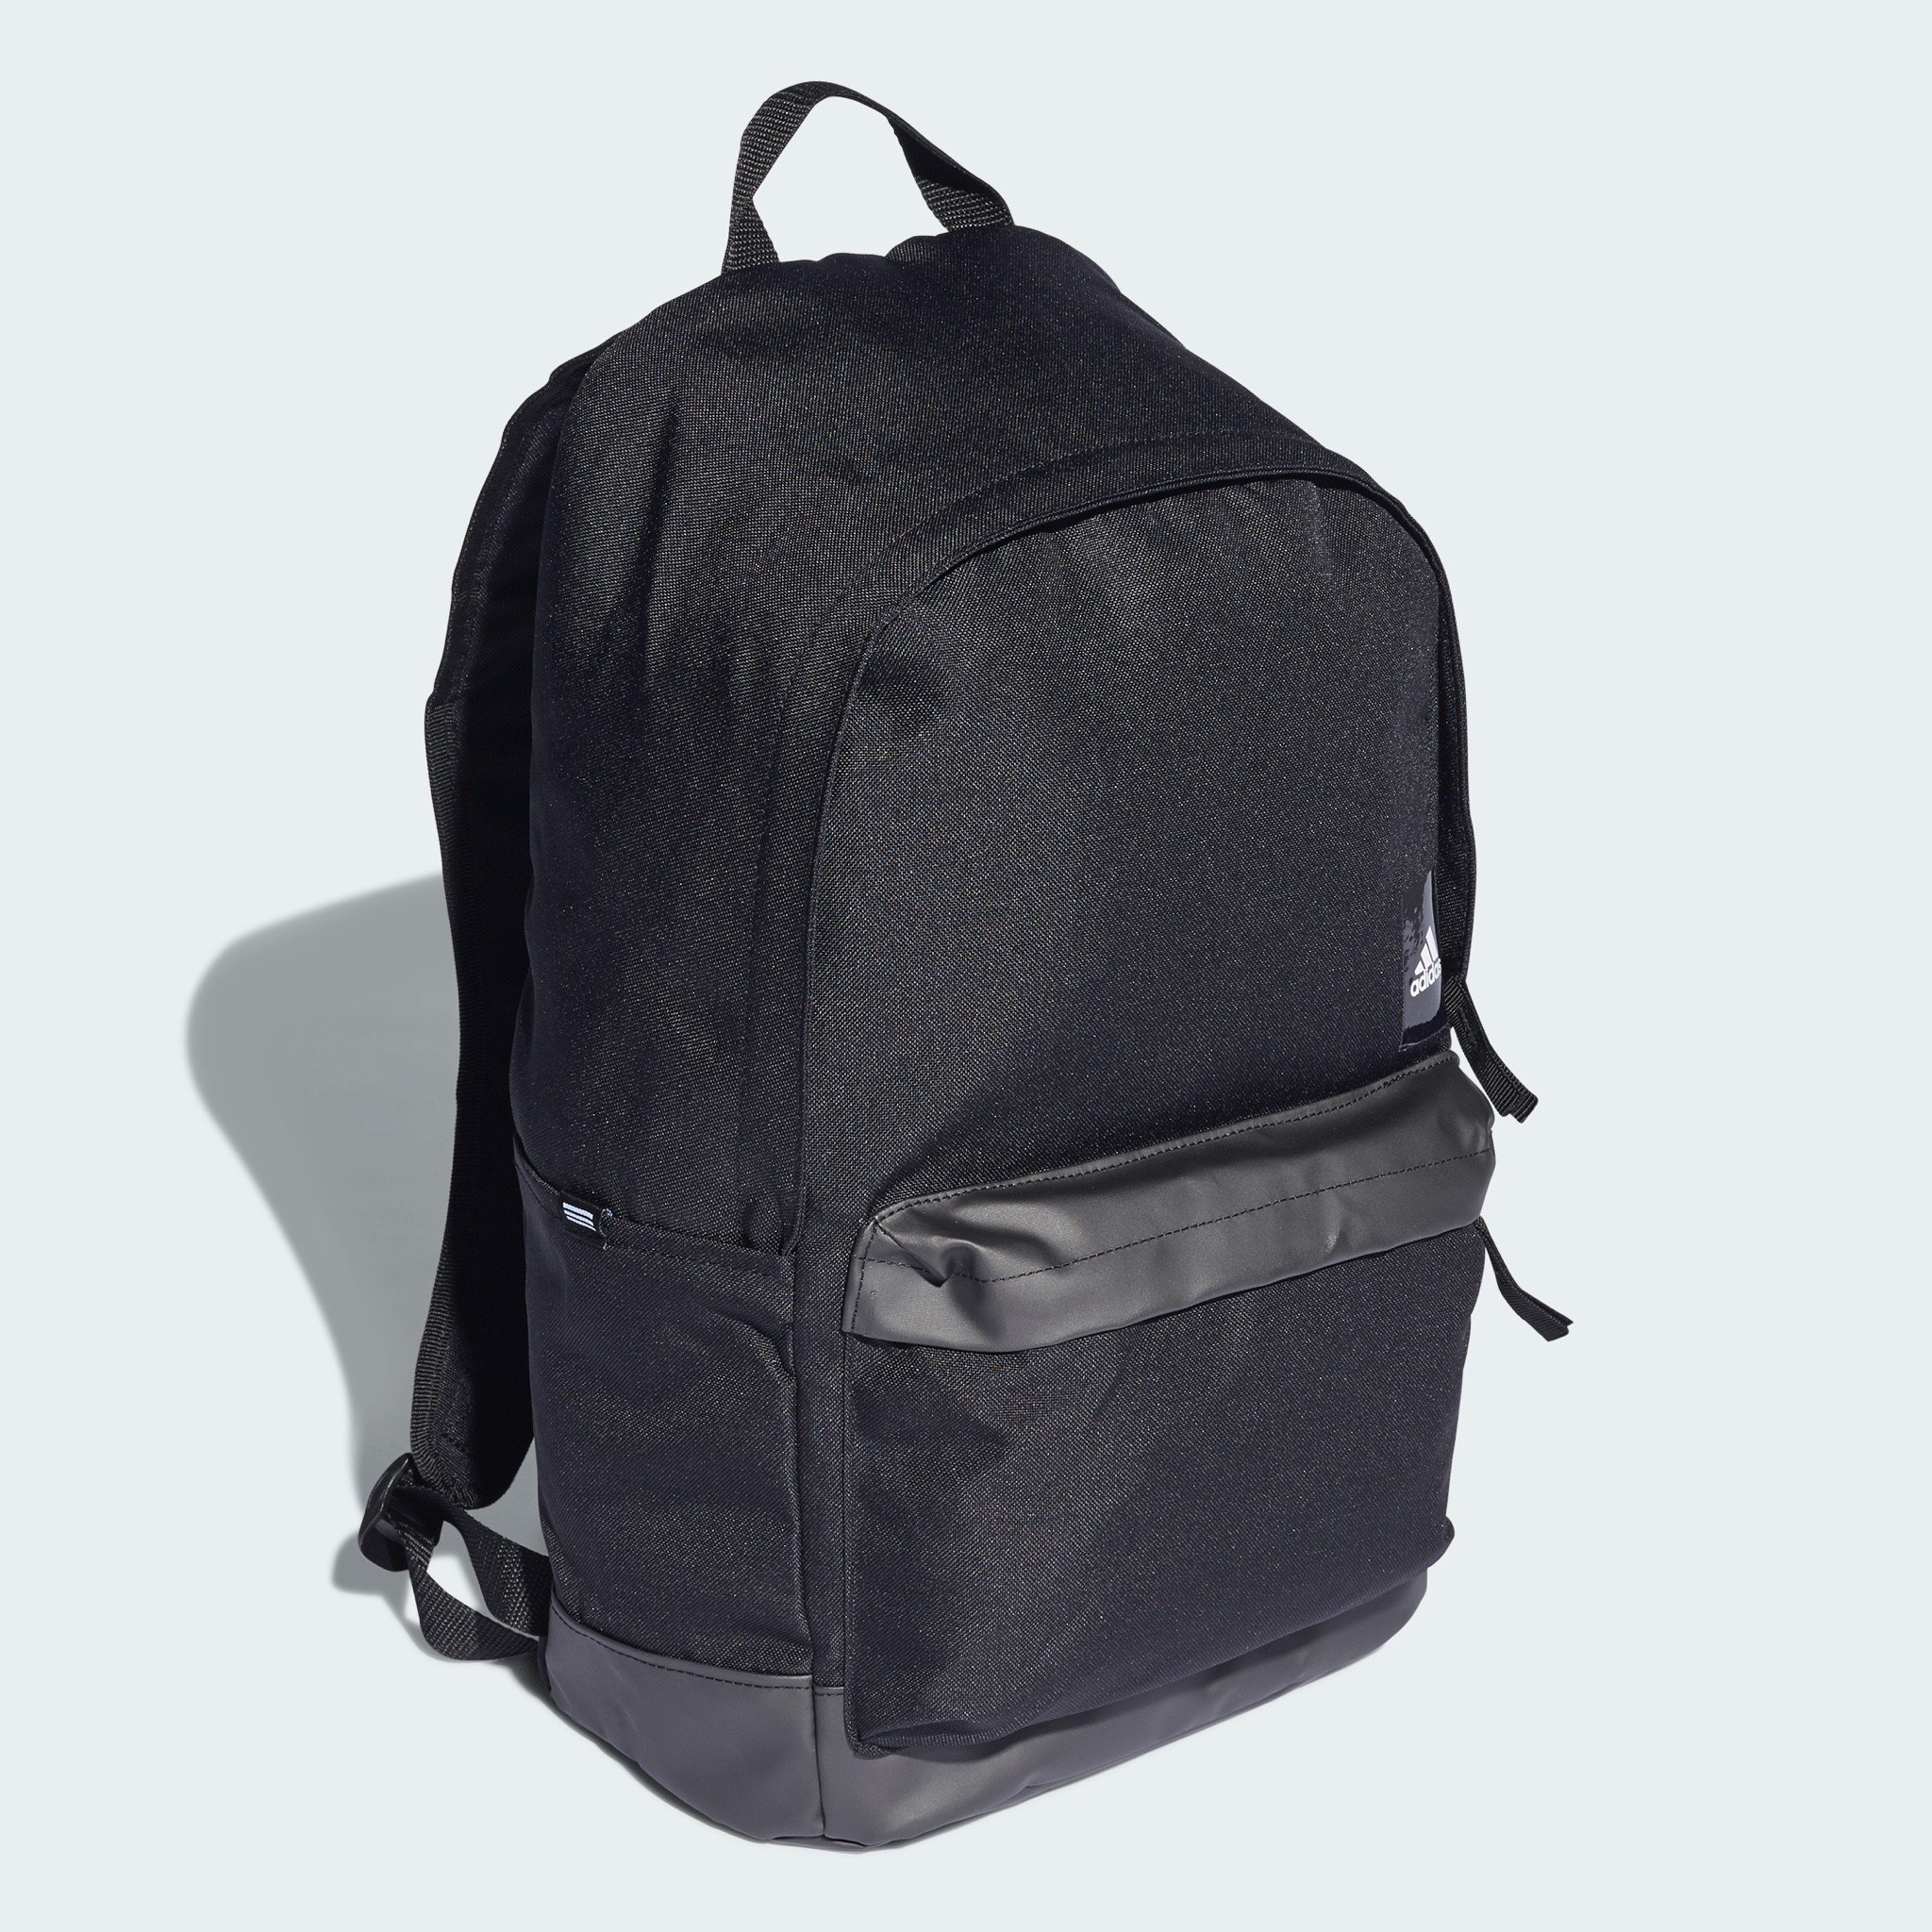 adidas Classic Pocket Backpack - Black